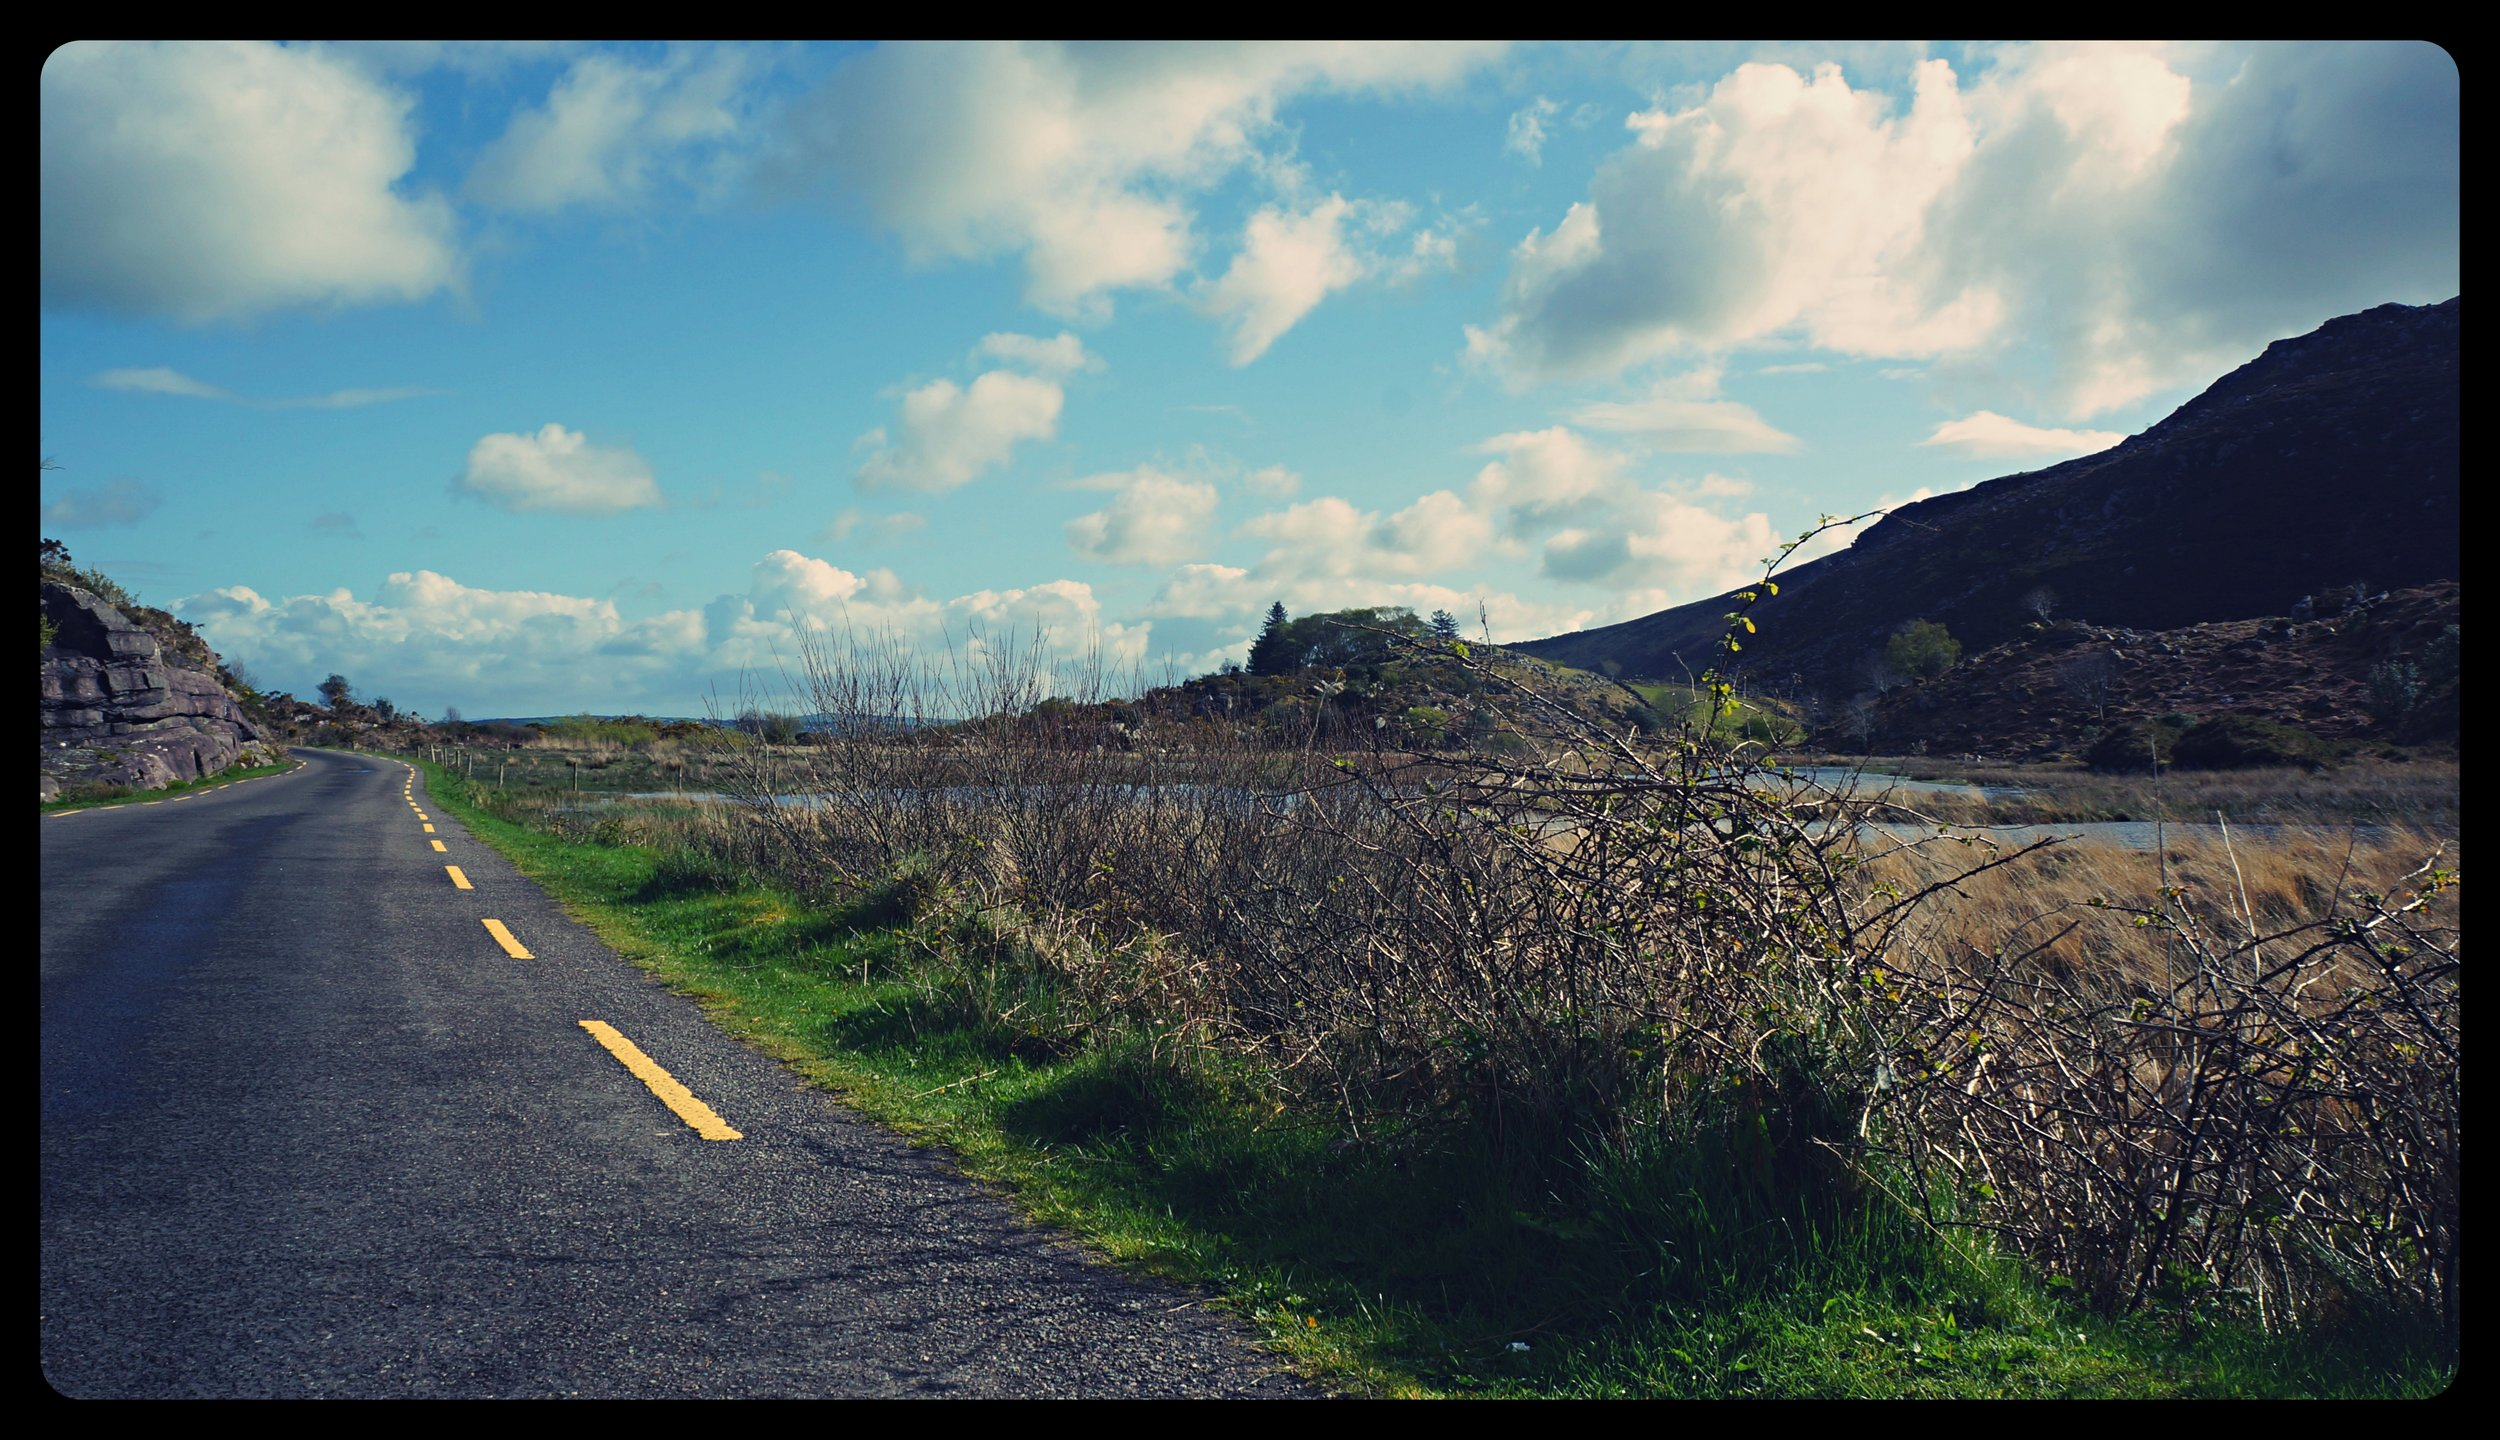 Road to the Dunloe Pass